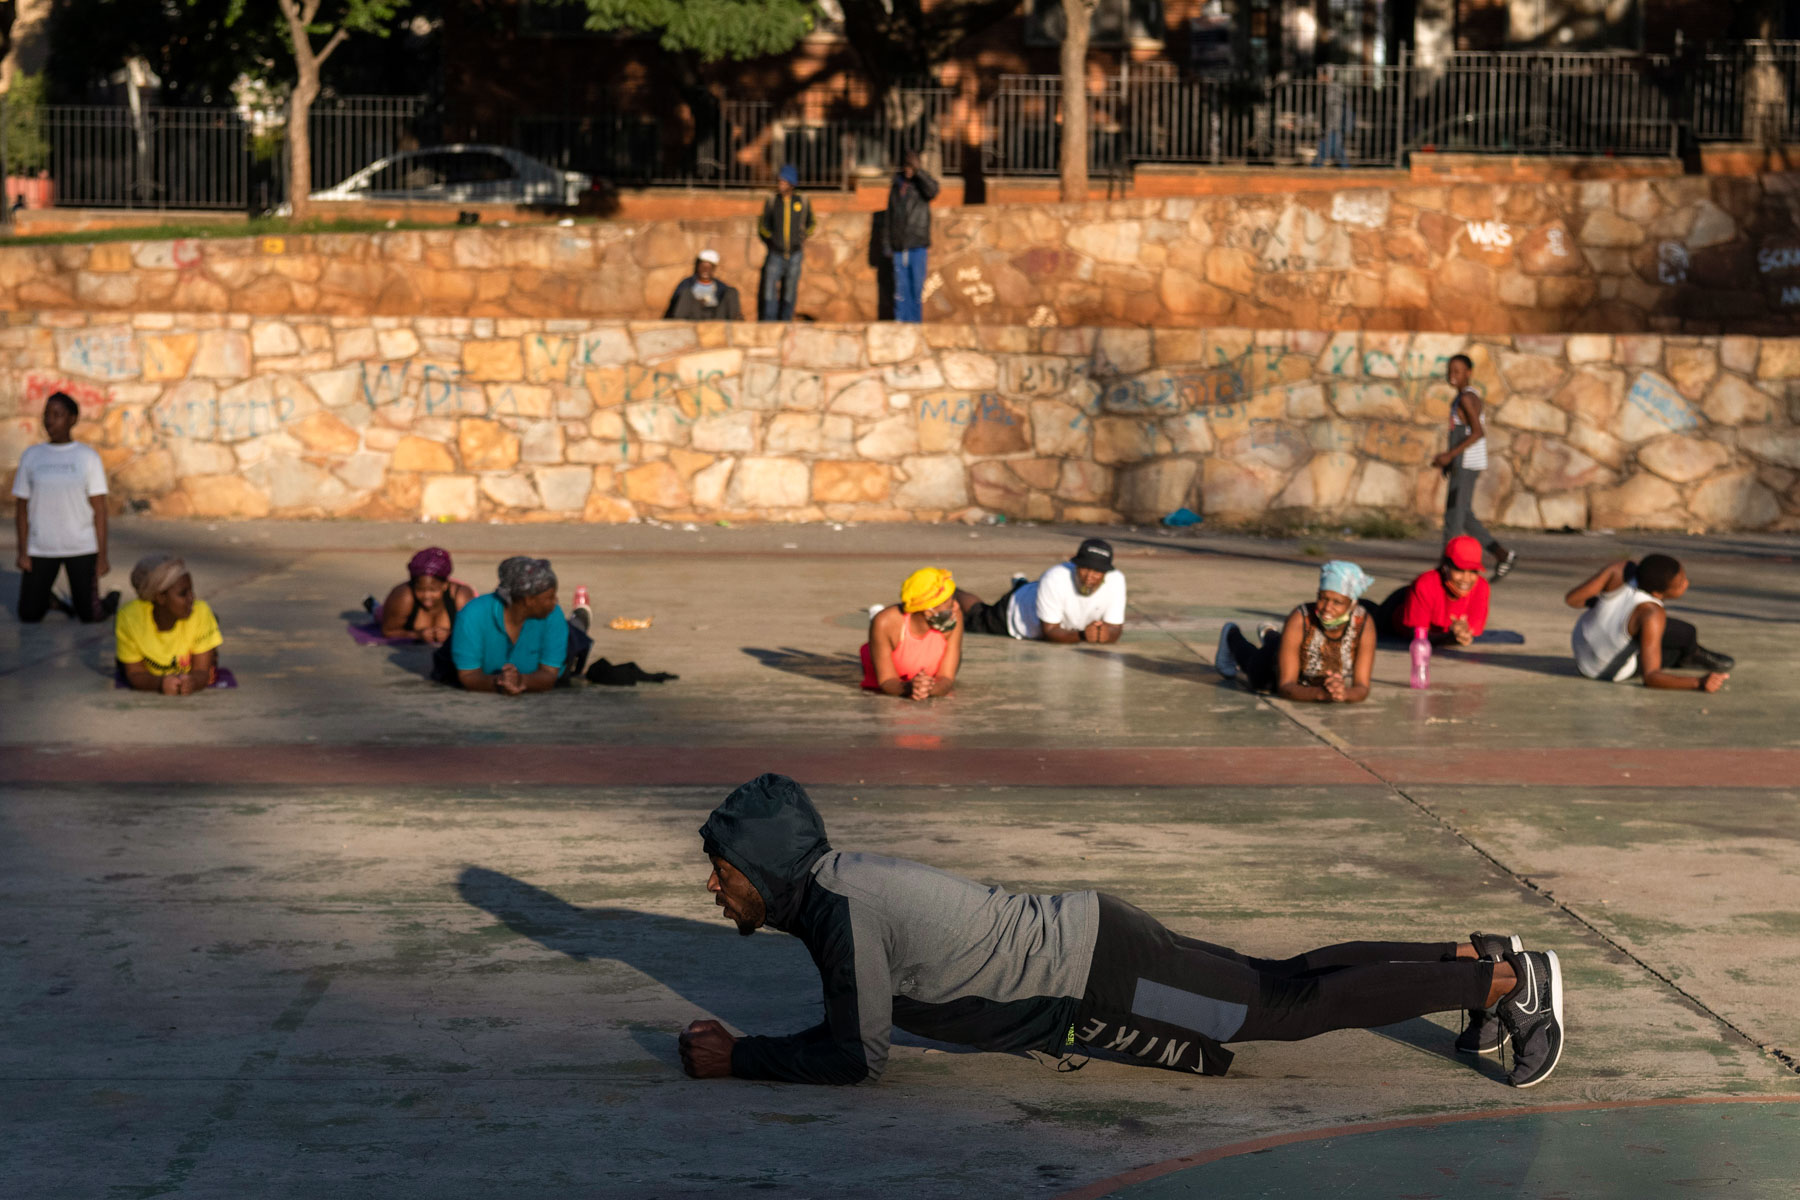 12 May 2020: Thulani Khupe leads people in an early morning exercise routine in Berea, Johannesburg.